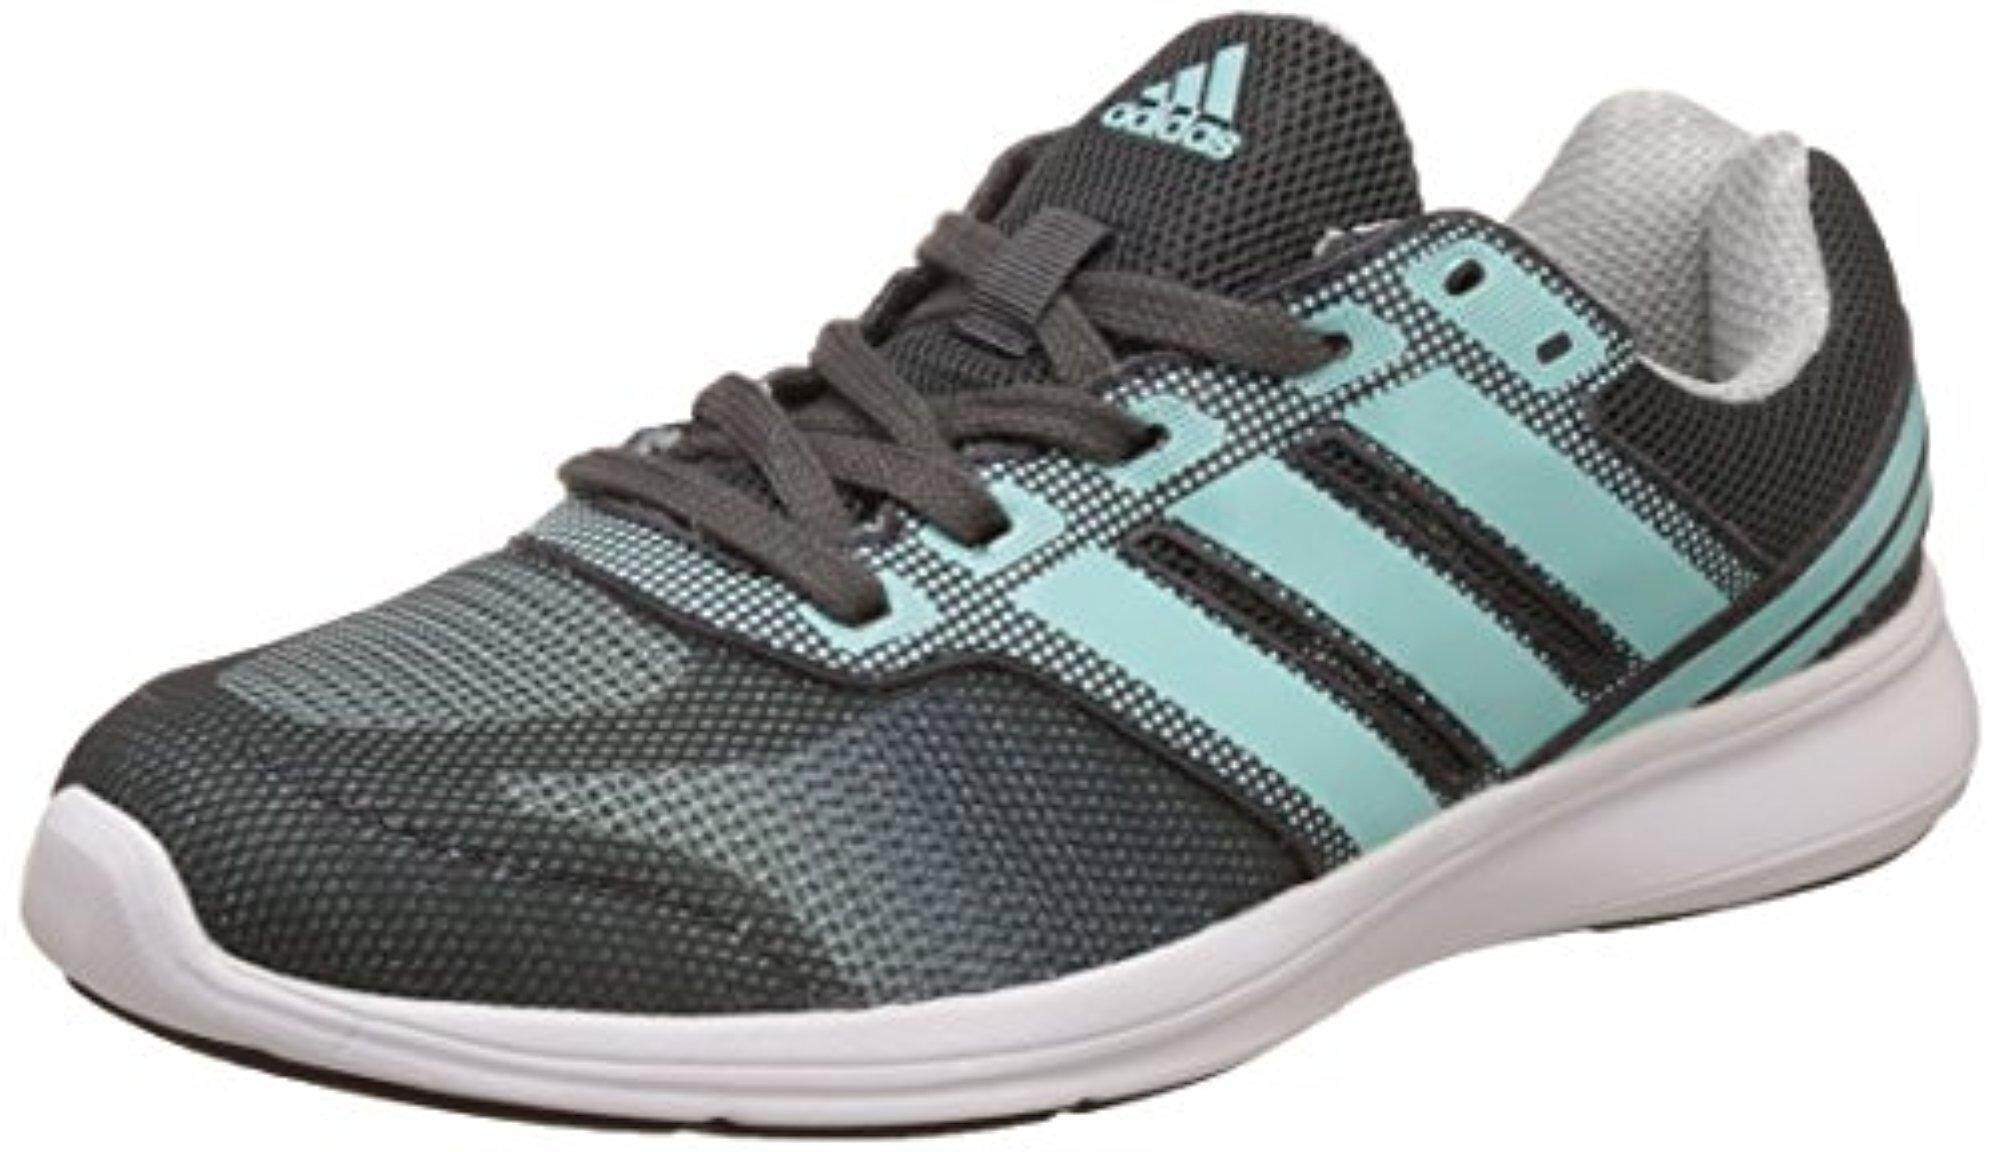 brand new cf4ac 4105b Adidas Women s Dgsogr, Icegrn and Silvmt Running Shoes - 5 UK India (38